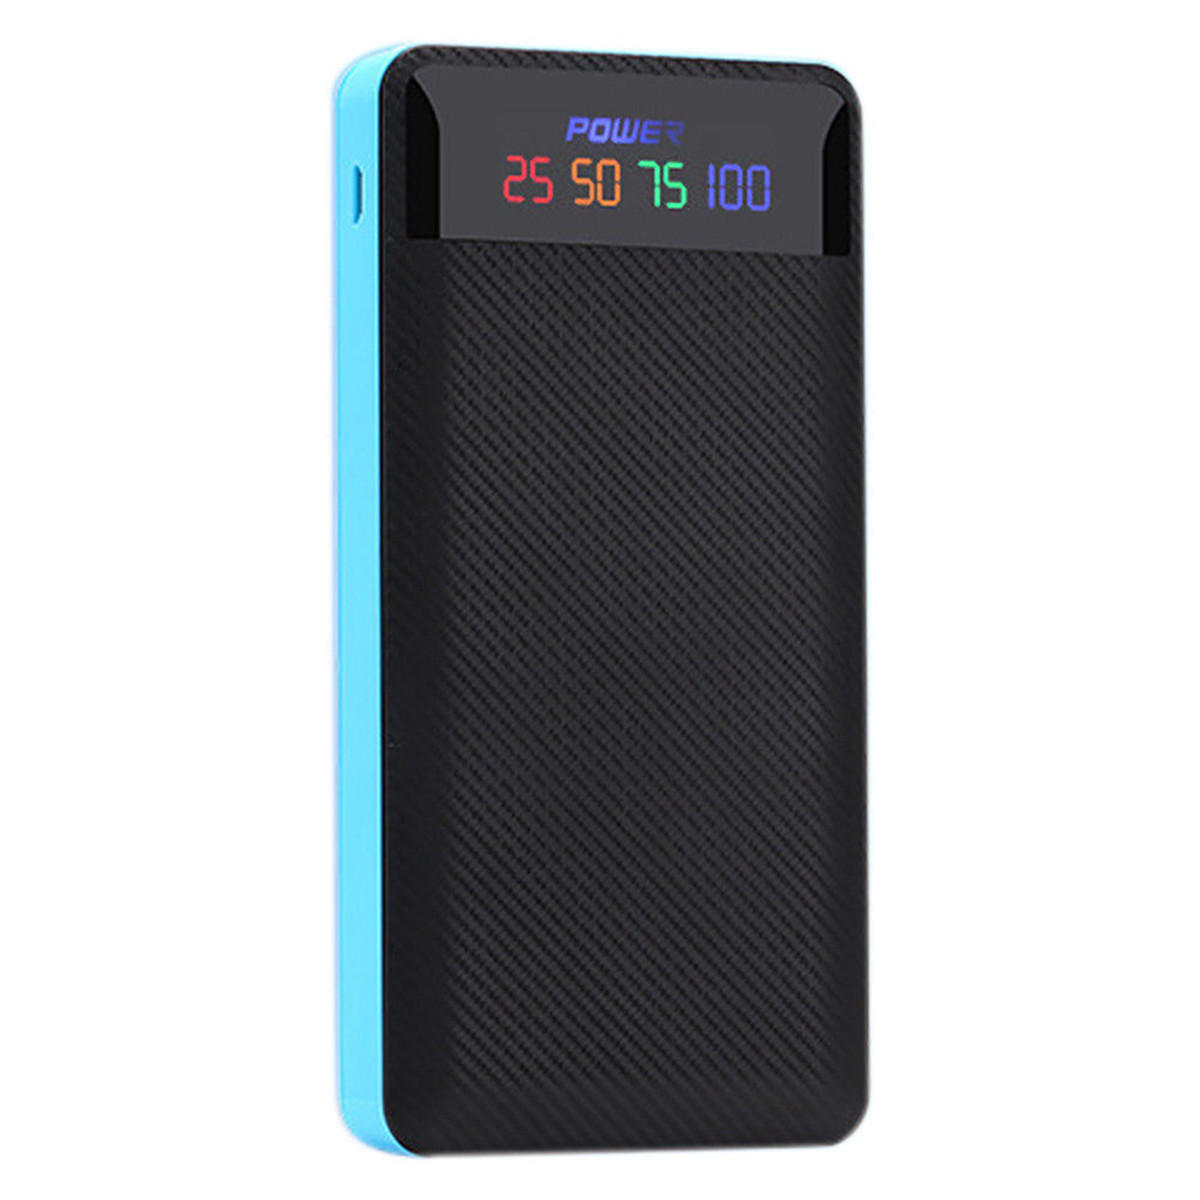 21a dual usb power bank case 4 618650 battery charger diy box case